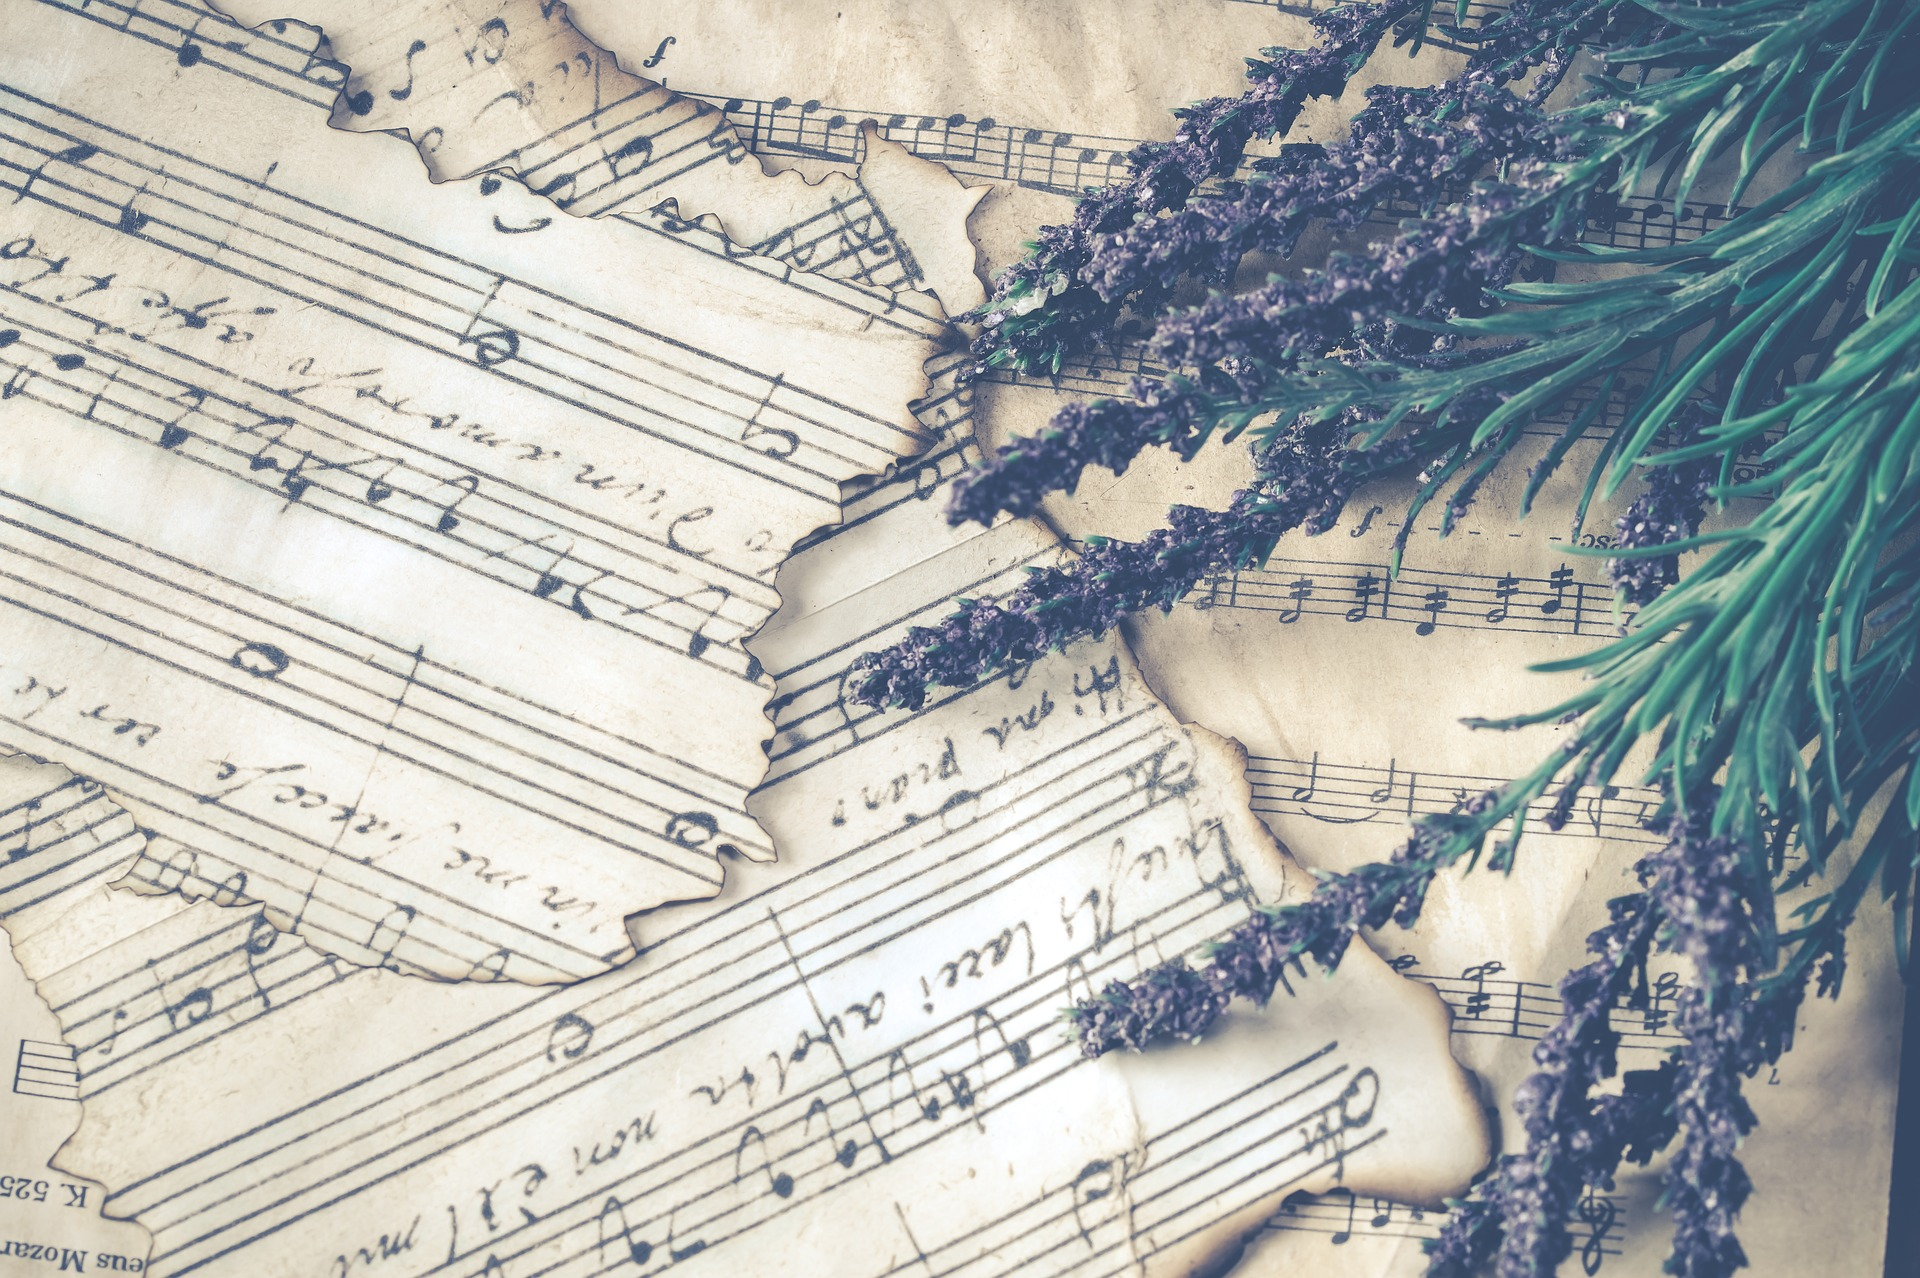 music sheets and lavender